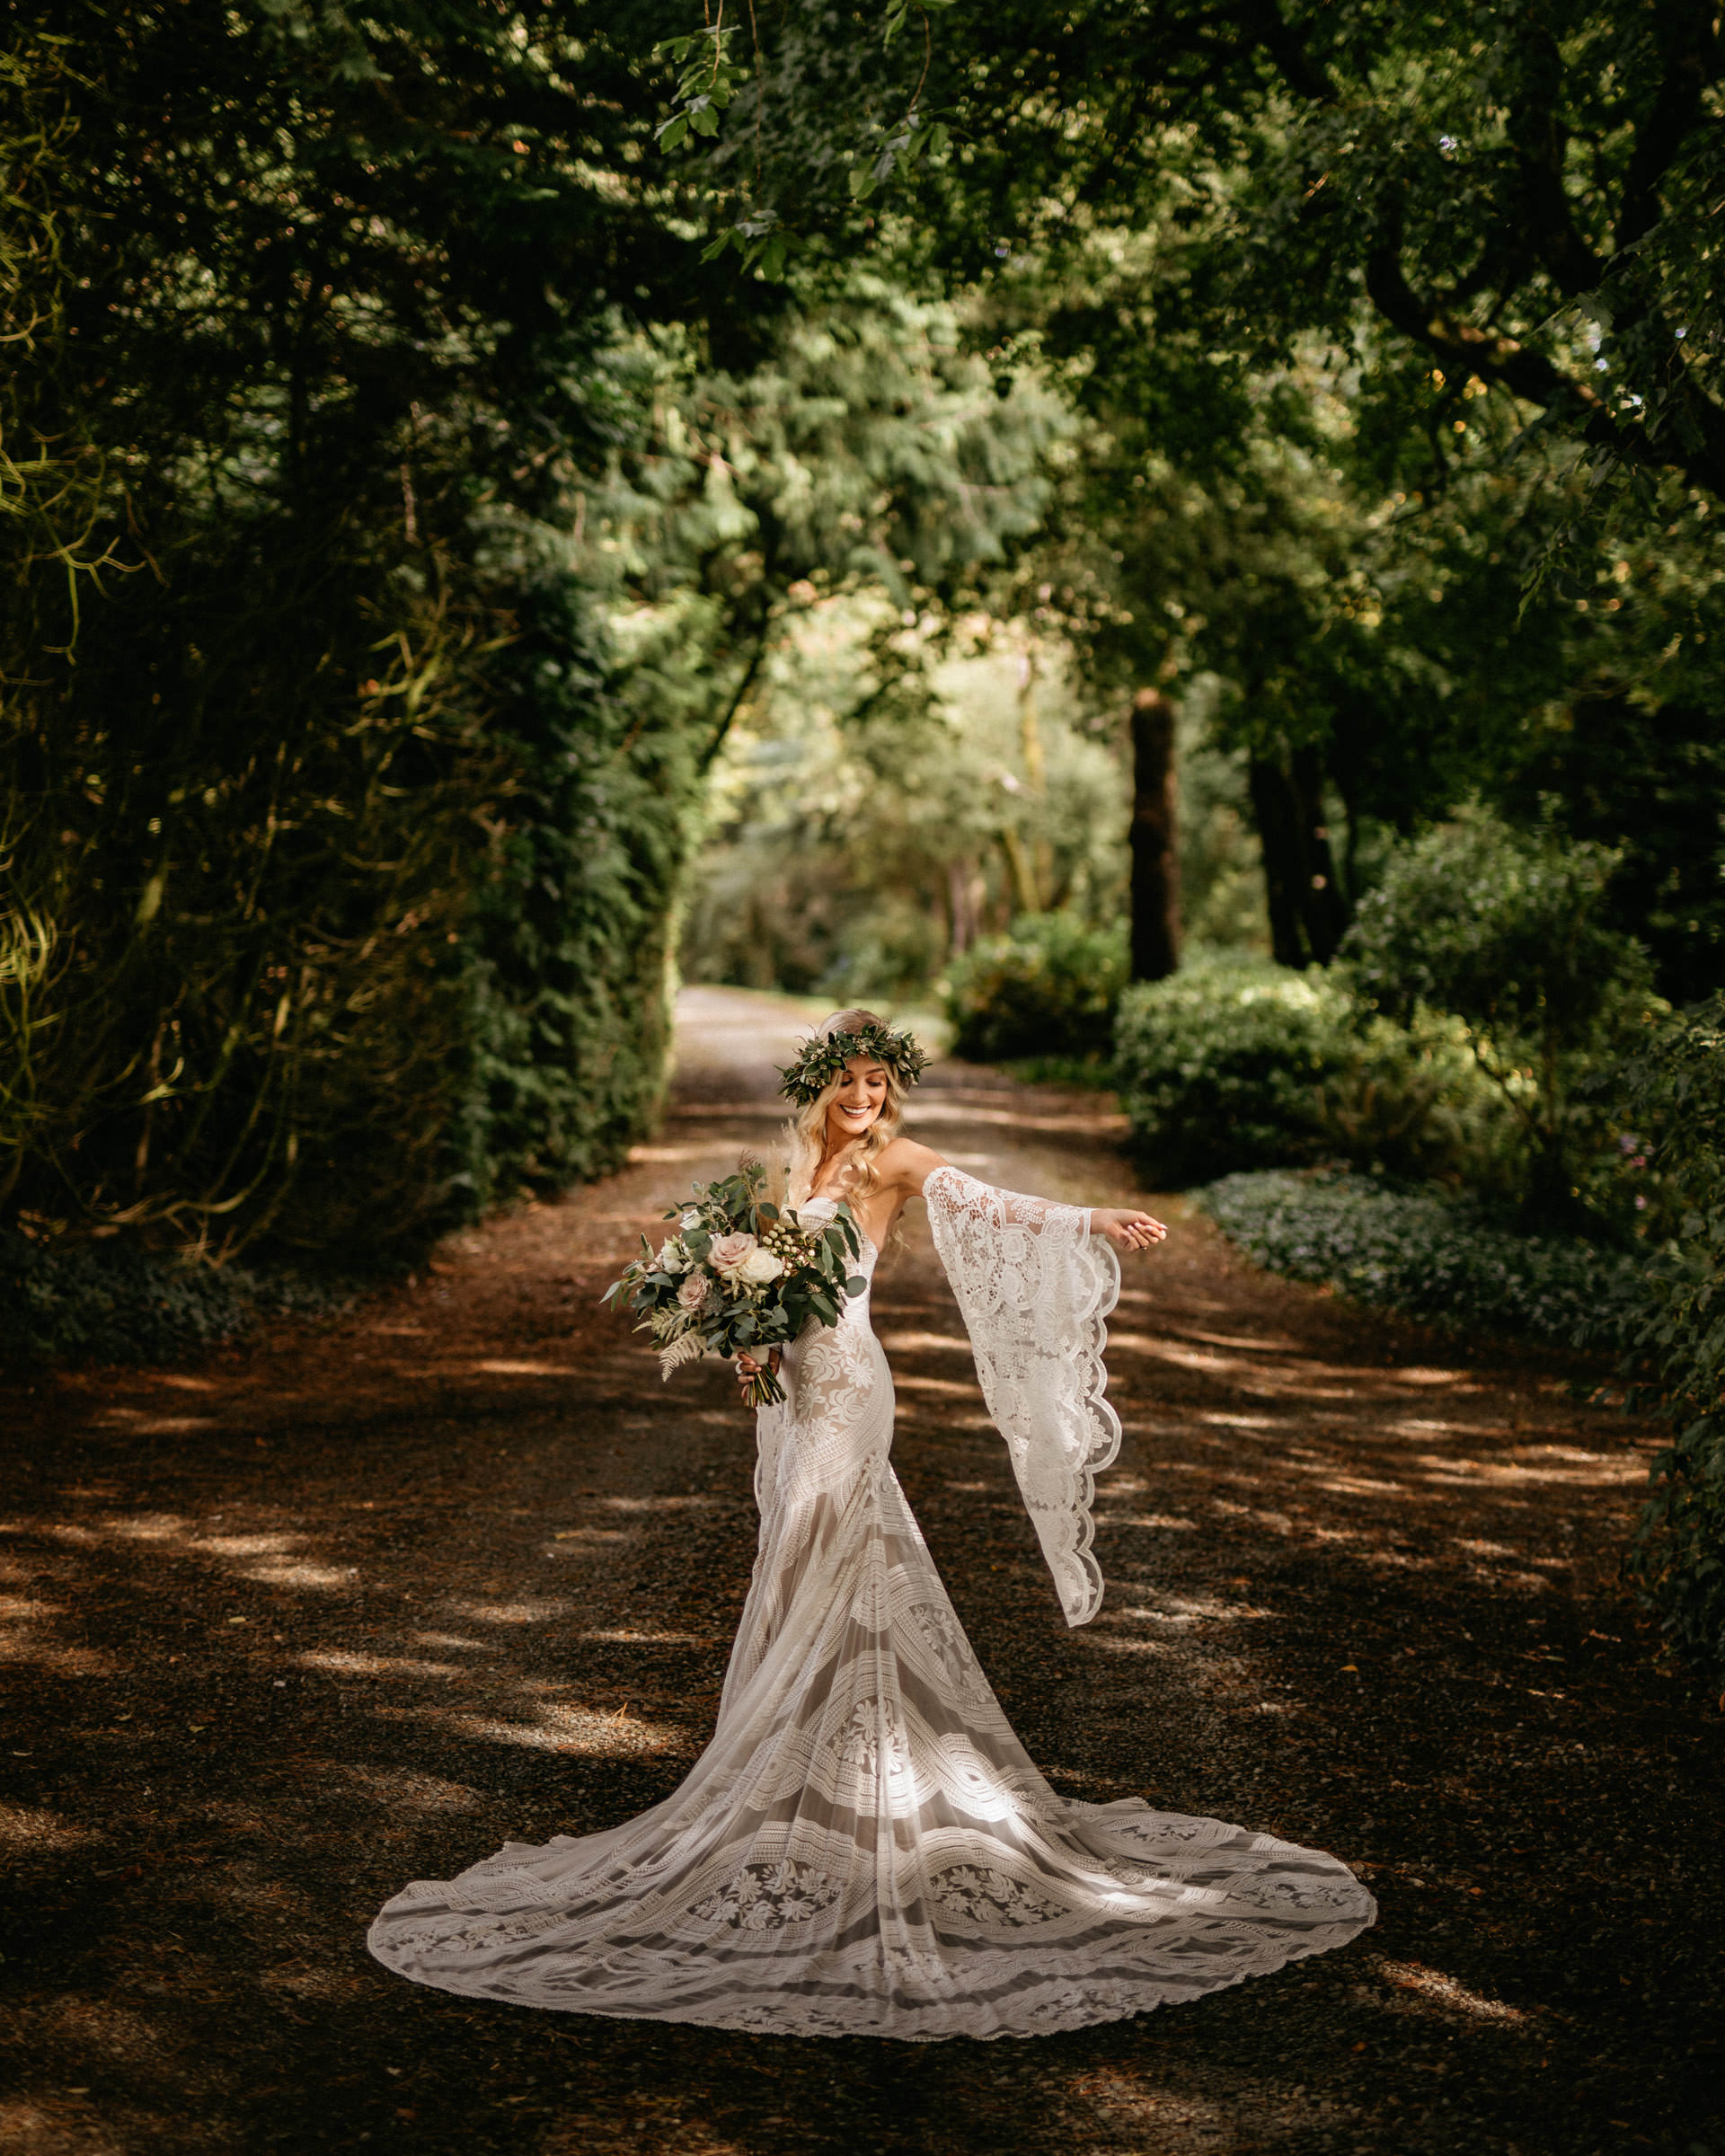 bride-with-floral-crown-and-large-bouquet-on-tree-lined-road-lima-conlon-photography